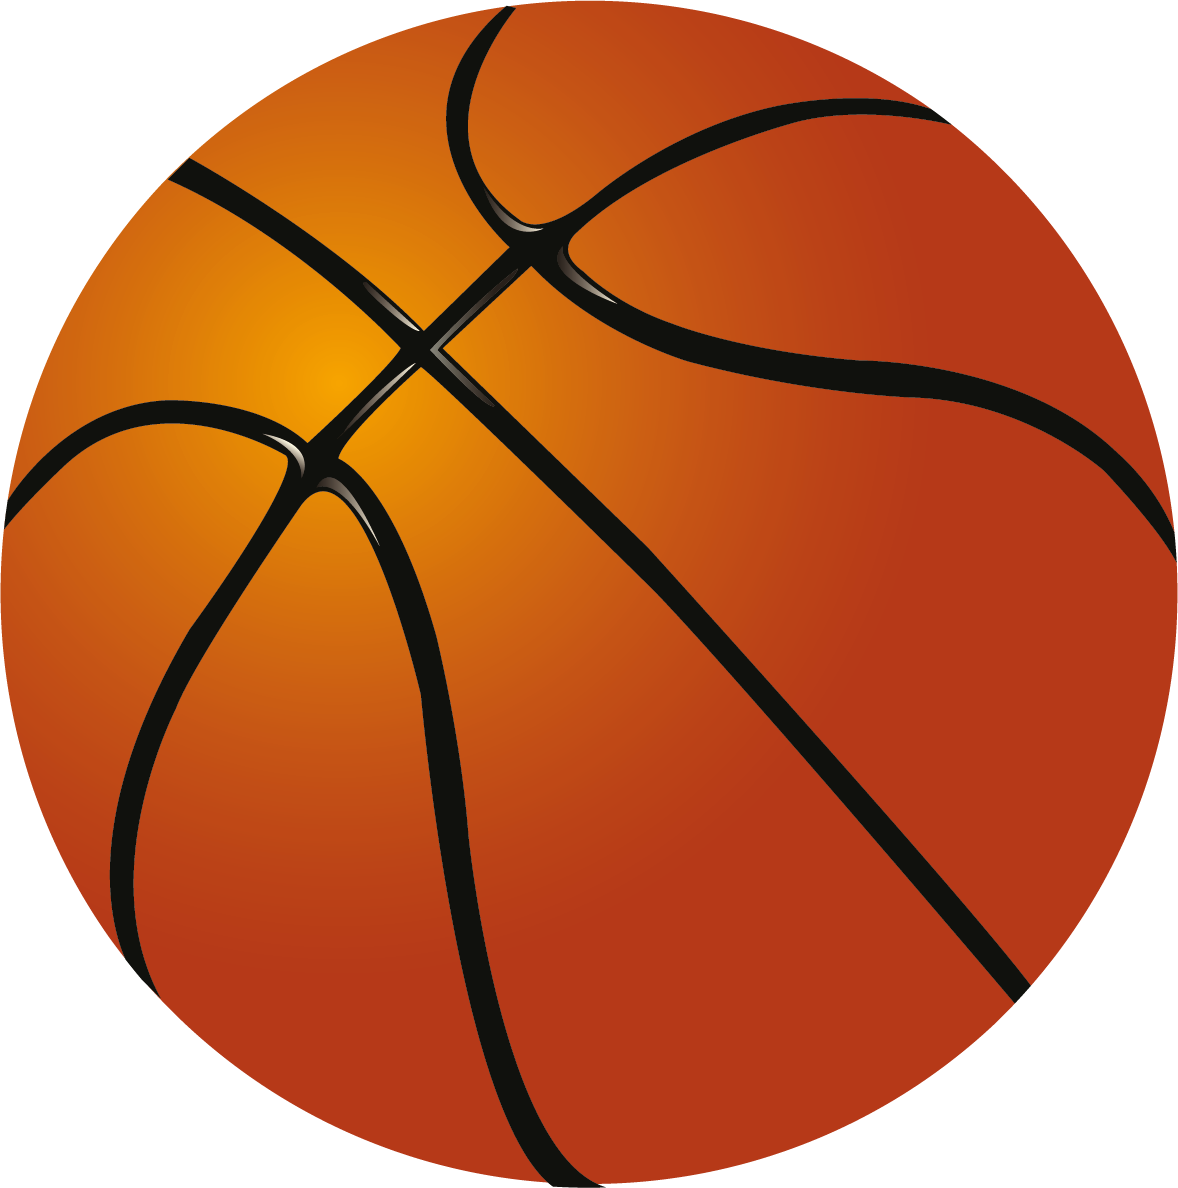 small resolution of basketball clipart clipart panda free clipart images